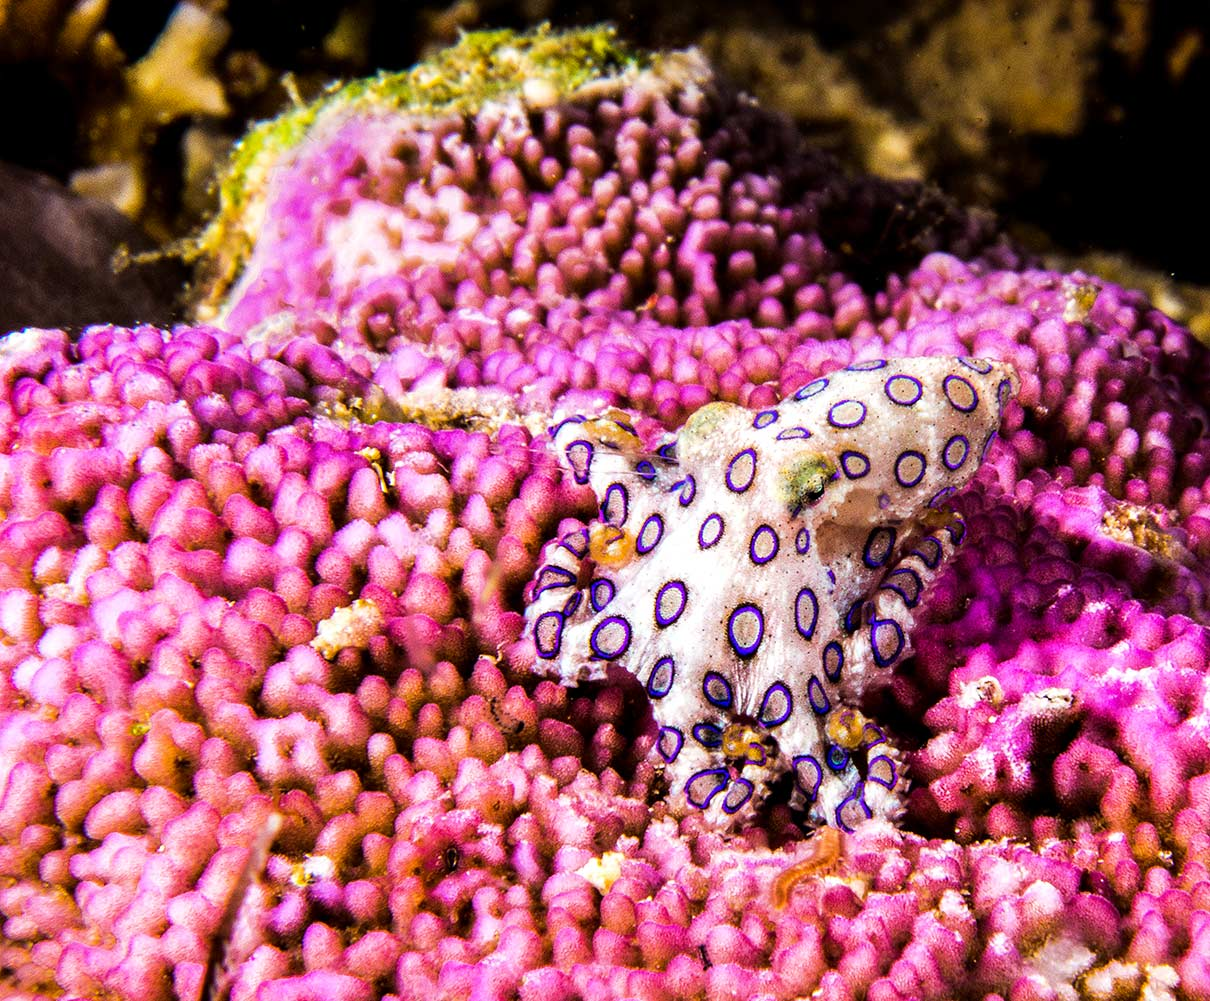 blue_ringed_octopus_by_stephane_eybalin